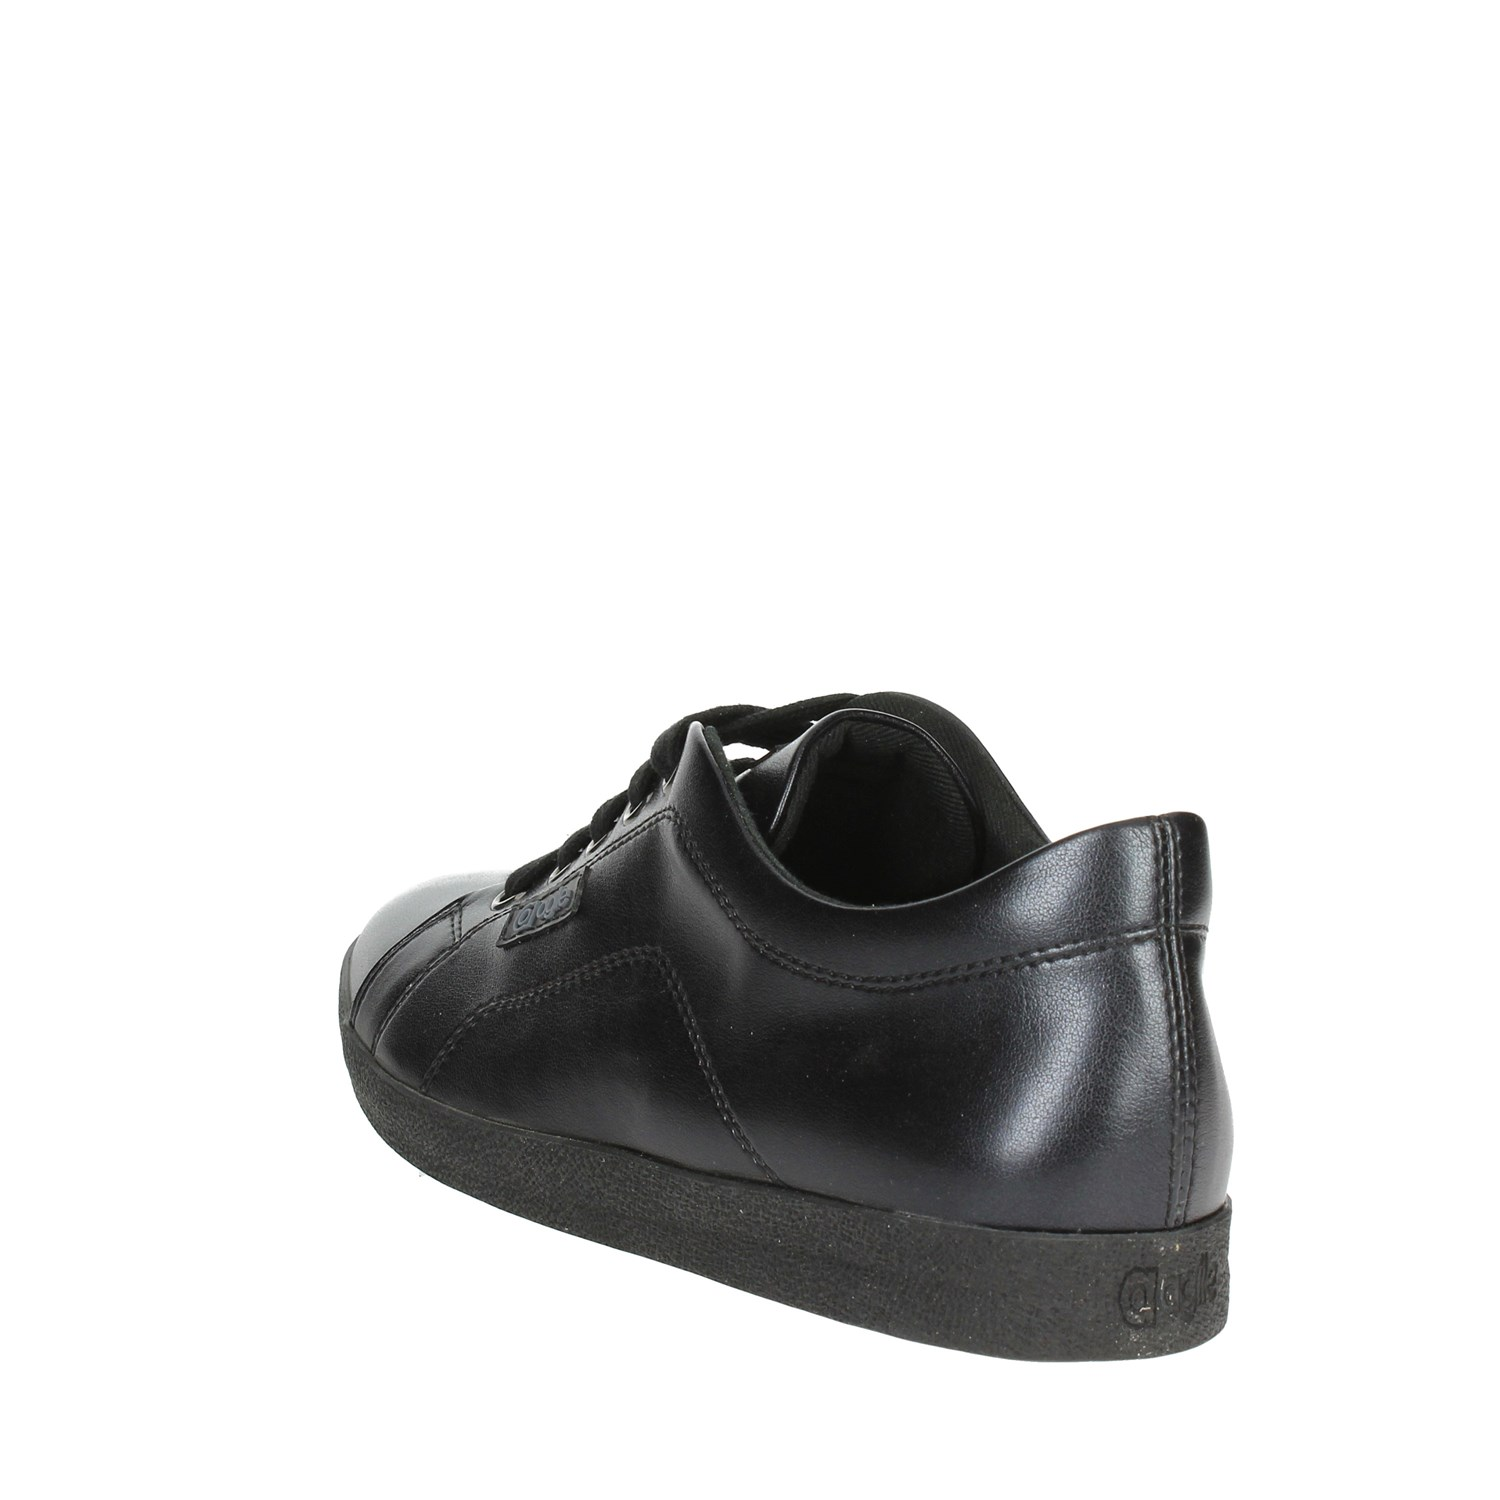 Agile By Rucoline  Primavera/Estate 2810(56-A) NERO Sneakers Bassa Damenschuhe Primavera/Estate  9b0d14